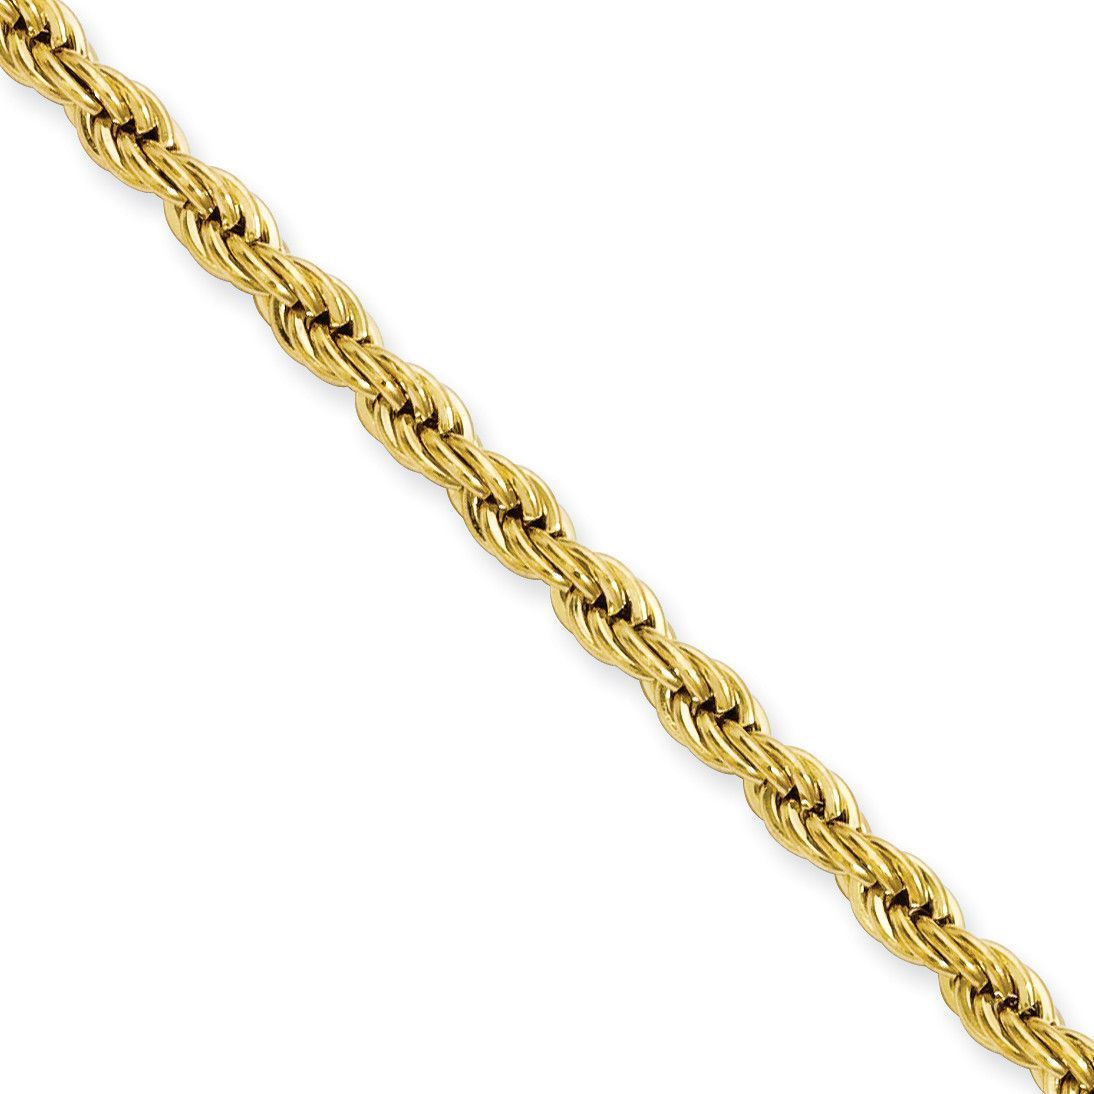 Stainless Steel Yellow IP-plated 4.0mm 22in Rope Chain SRN673GP-22